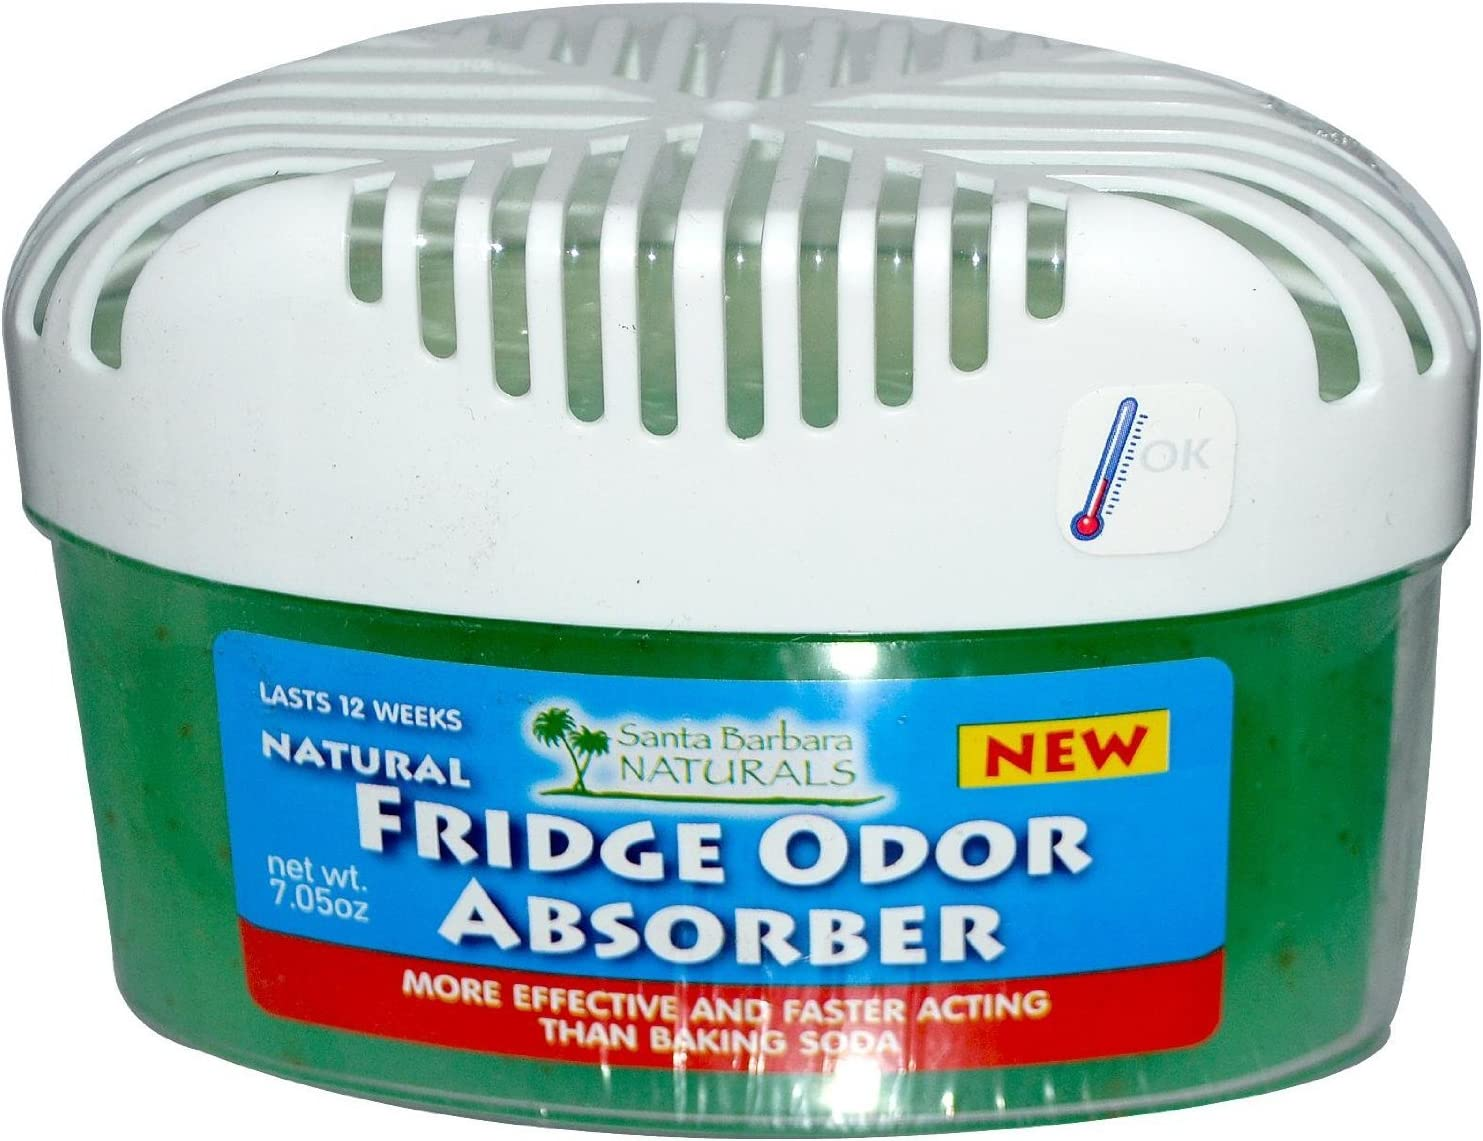 Fridge Odor Absorber: The Premium, Naturally Air Purifying, Absorbent Odor Eliminator and Deodorizer for your Refrigerator. 3X More Powerful and Effective Freshener than Baking Soda (case of 8 units)